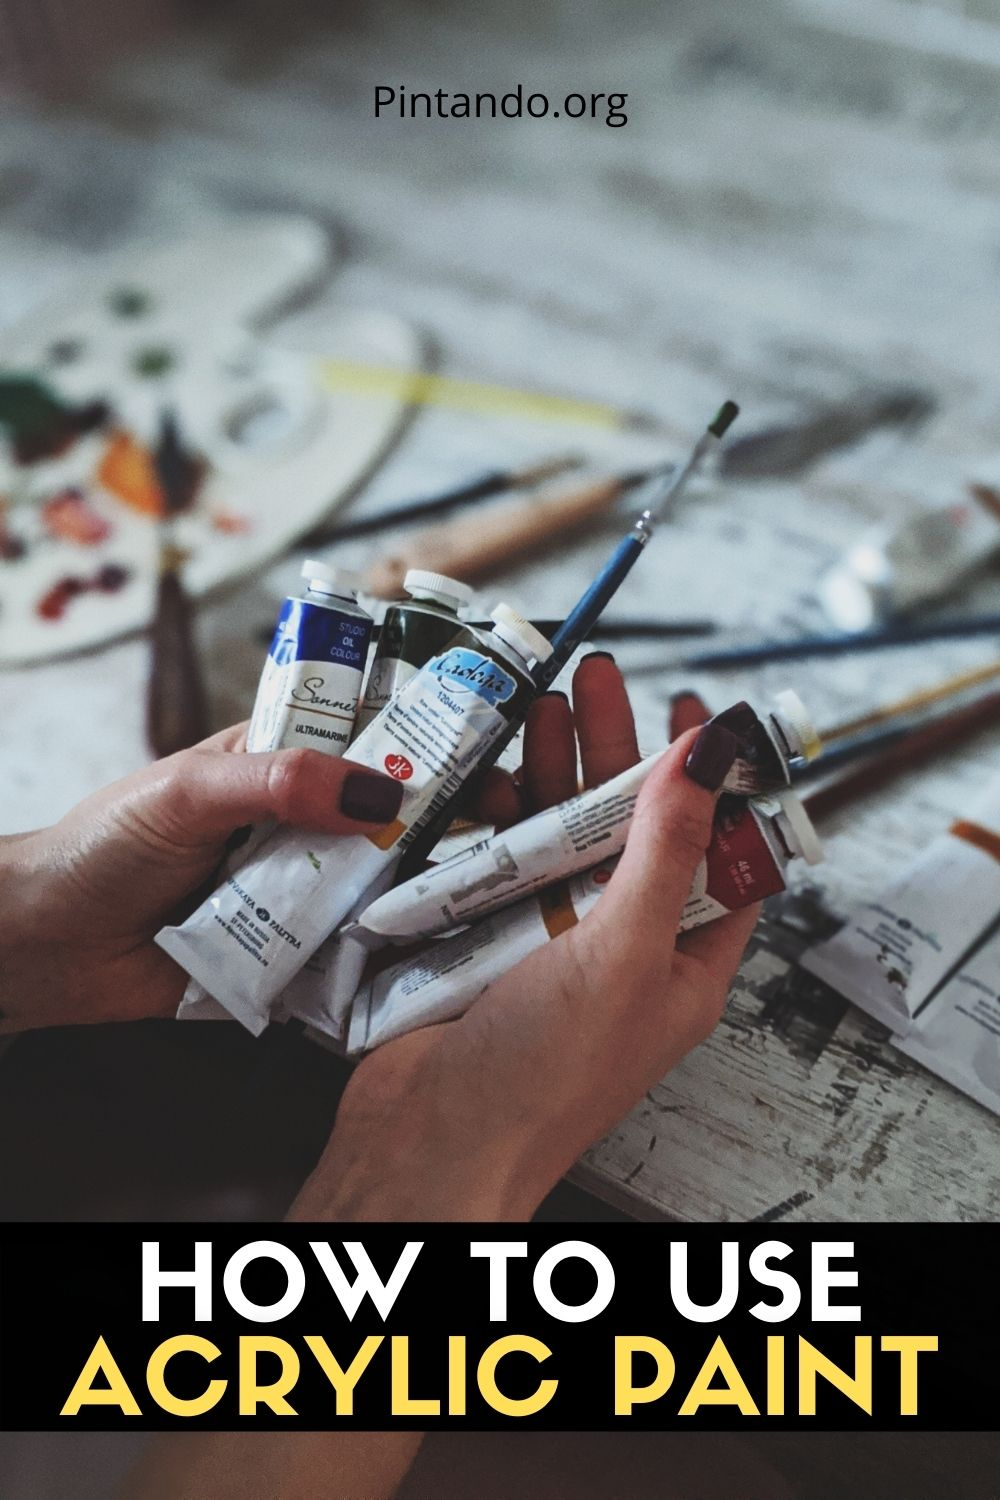 HOW TO USE ACRYLIC PAINT (2)